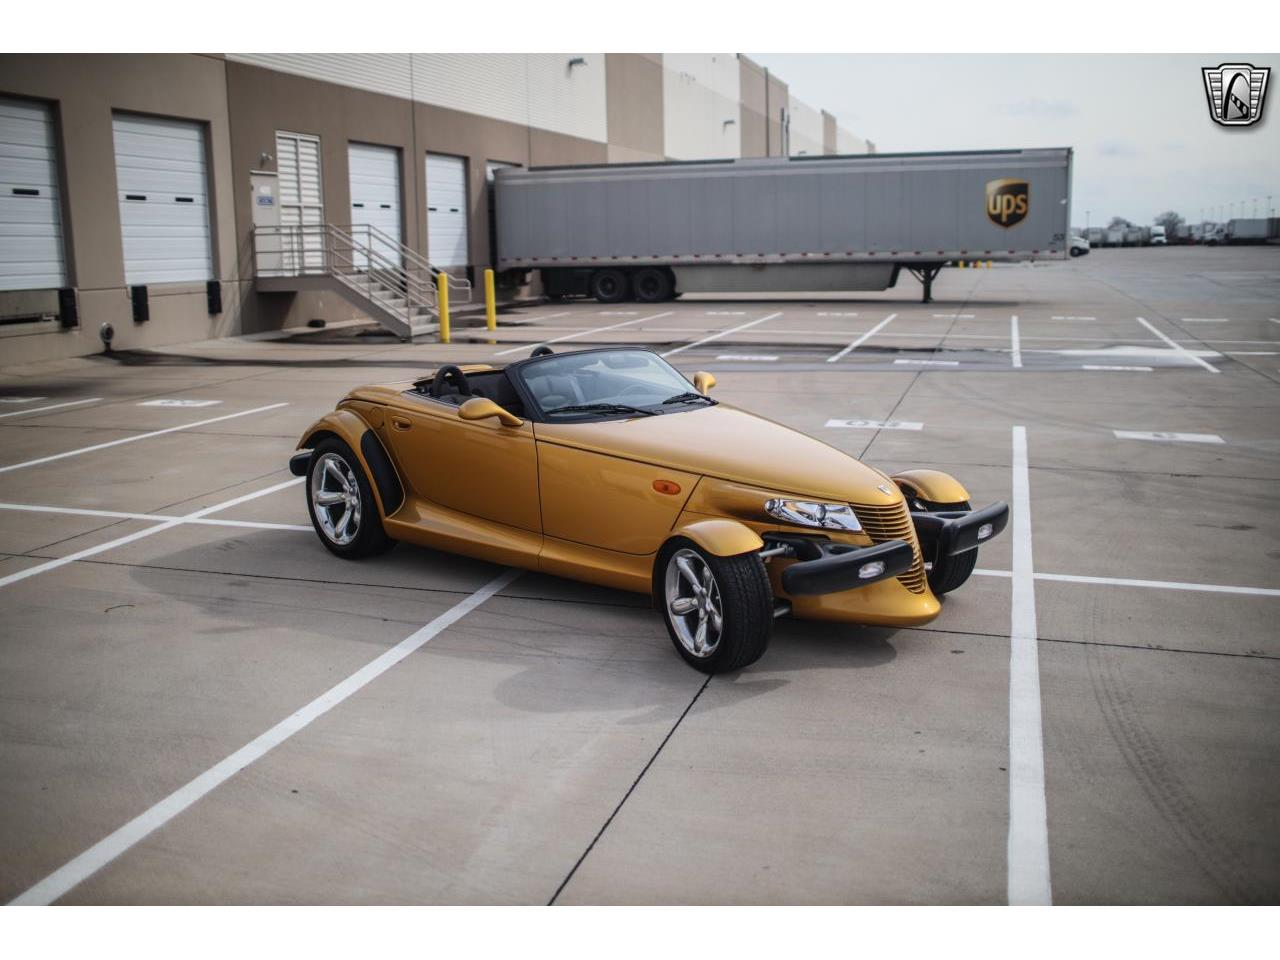 2002 Chrysler Prowler (CC-1341306) for sale in O'Fallon, Illinois